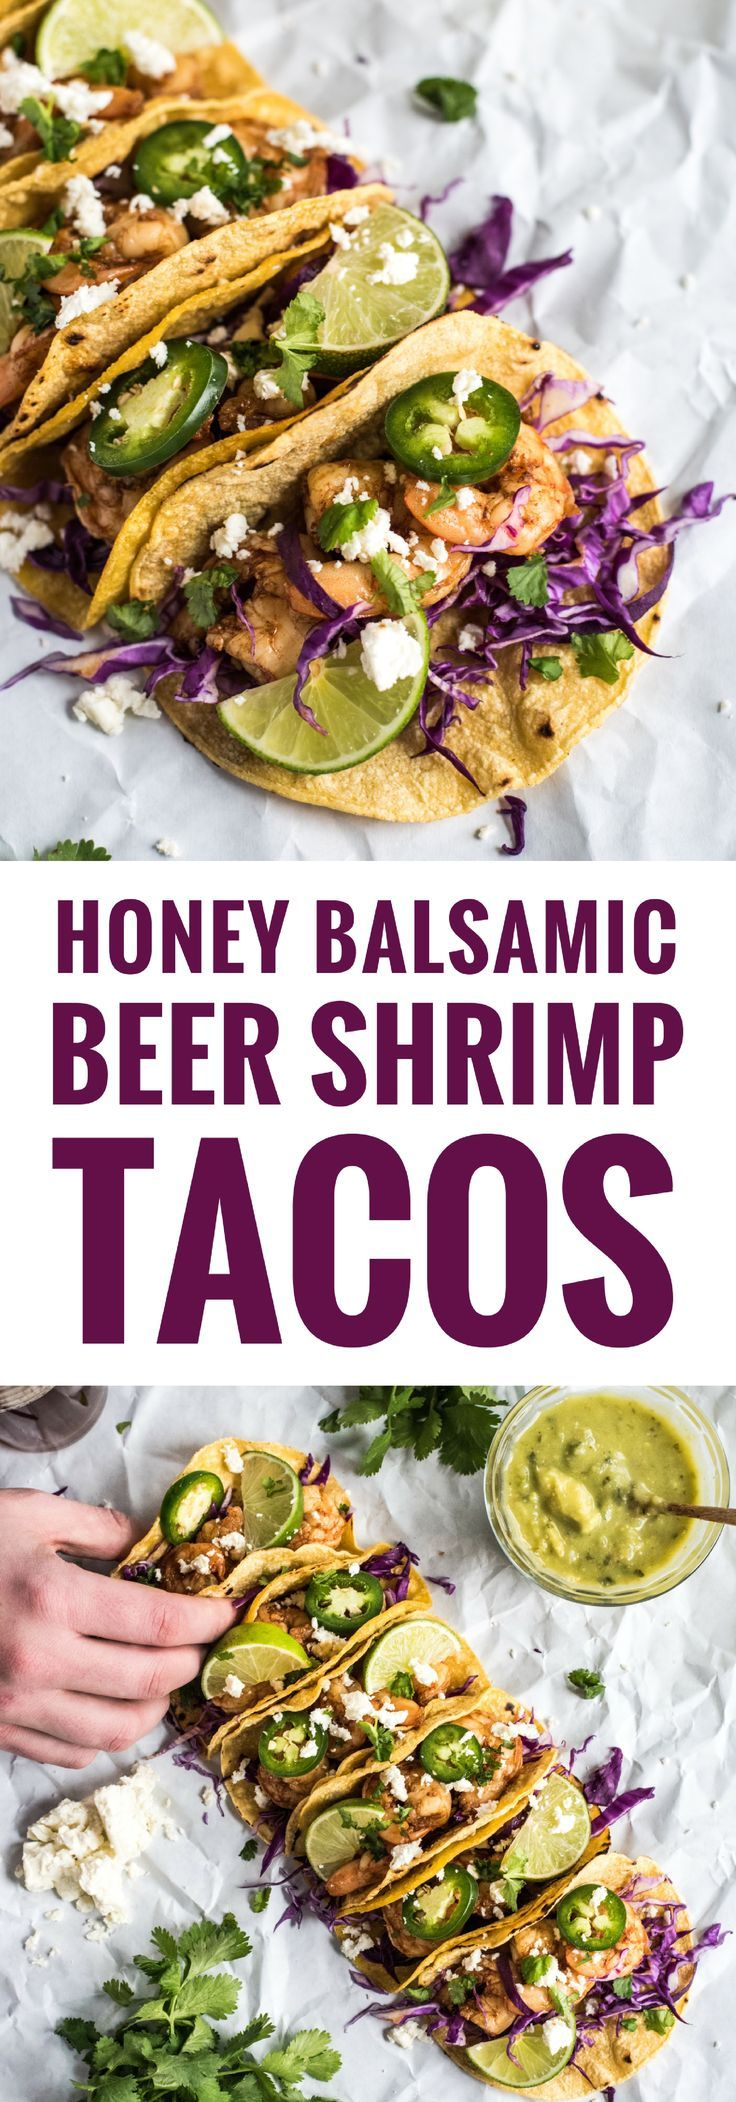 22 best recipes with beer images on pinterest delicious recipes honey balsamic beer shrimp tacos mexican cookingmexican food recipessweets forumfinder Image collections